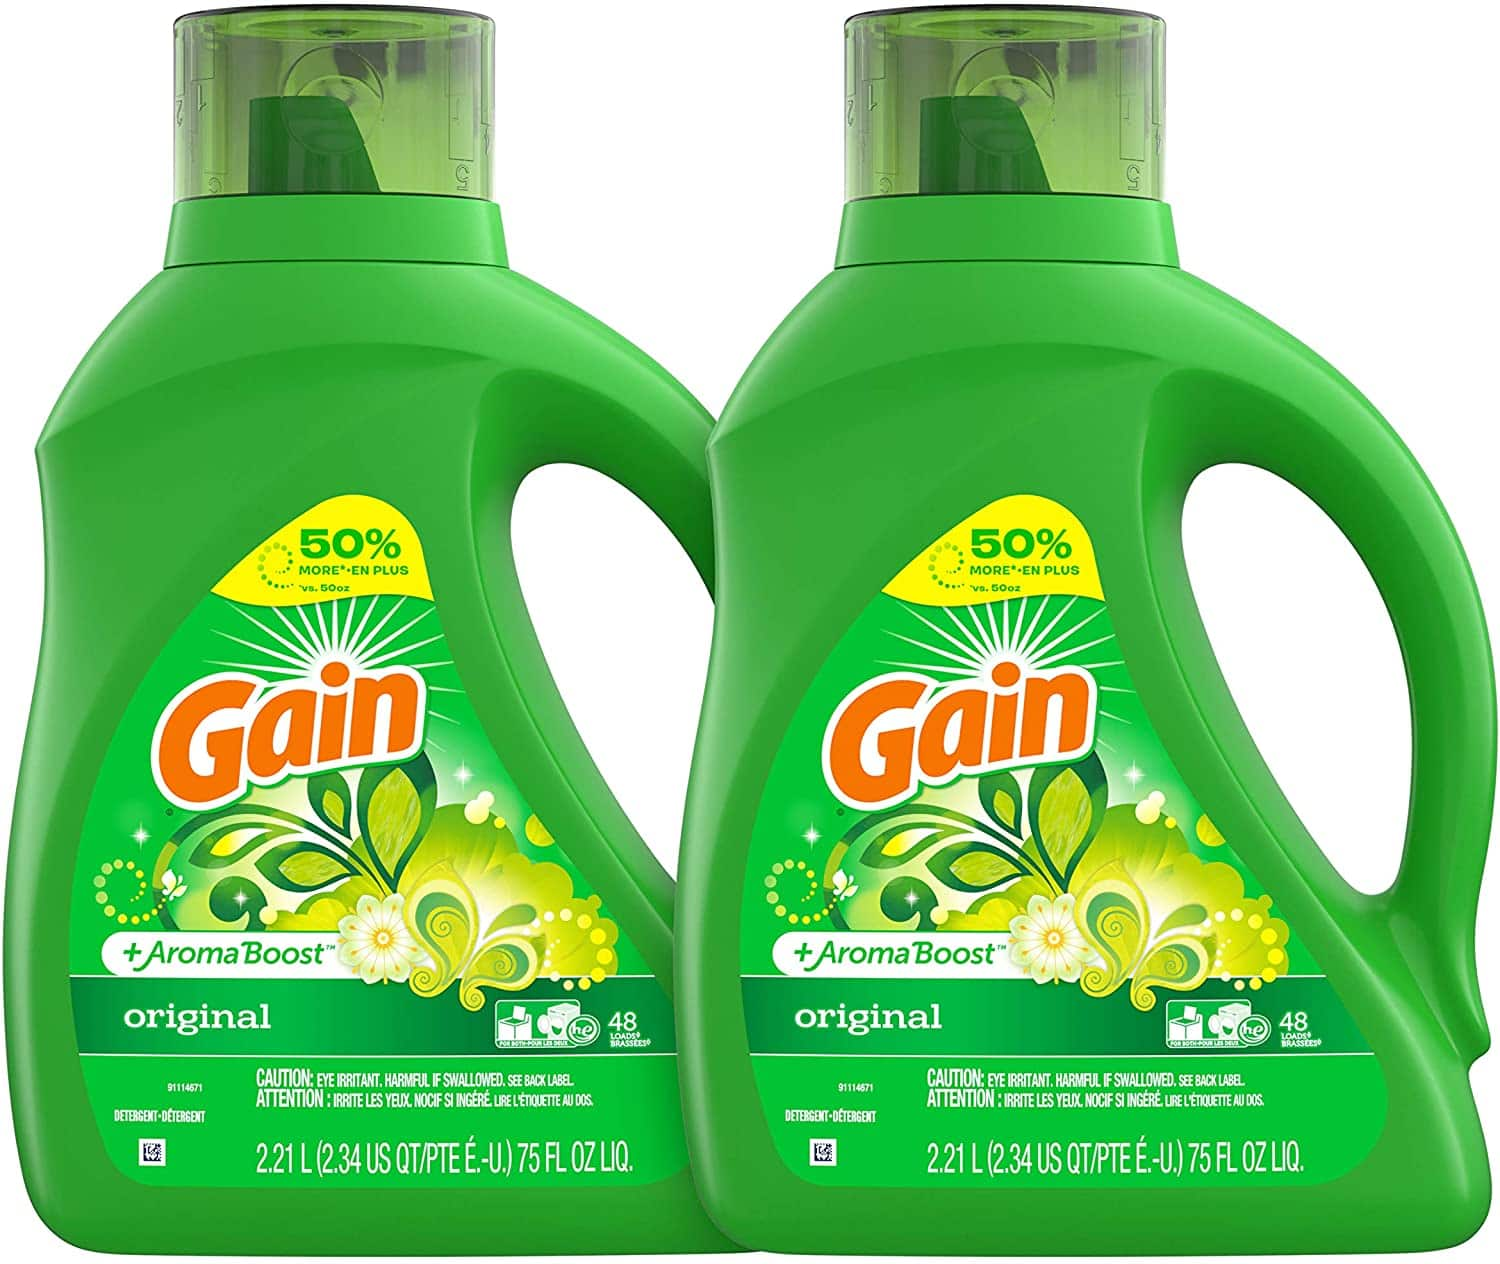 2-Pack of 75-Oz Gain Liquid Laundry Detergent Plus Aroma Boost (Original Scent) $11.08 w/ S&S + Free Shipping w/ Prime